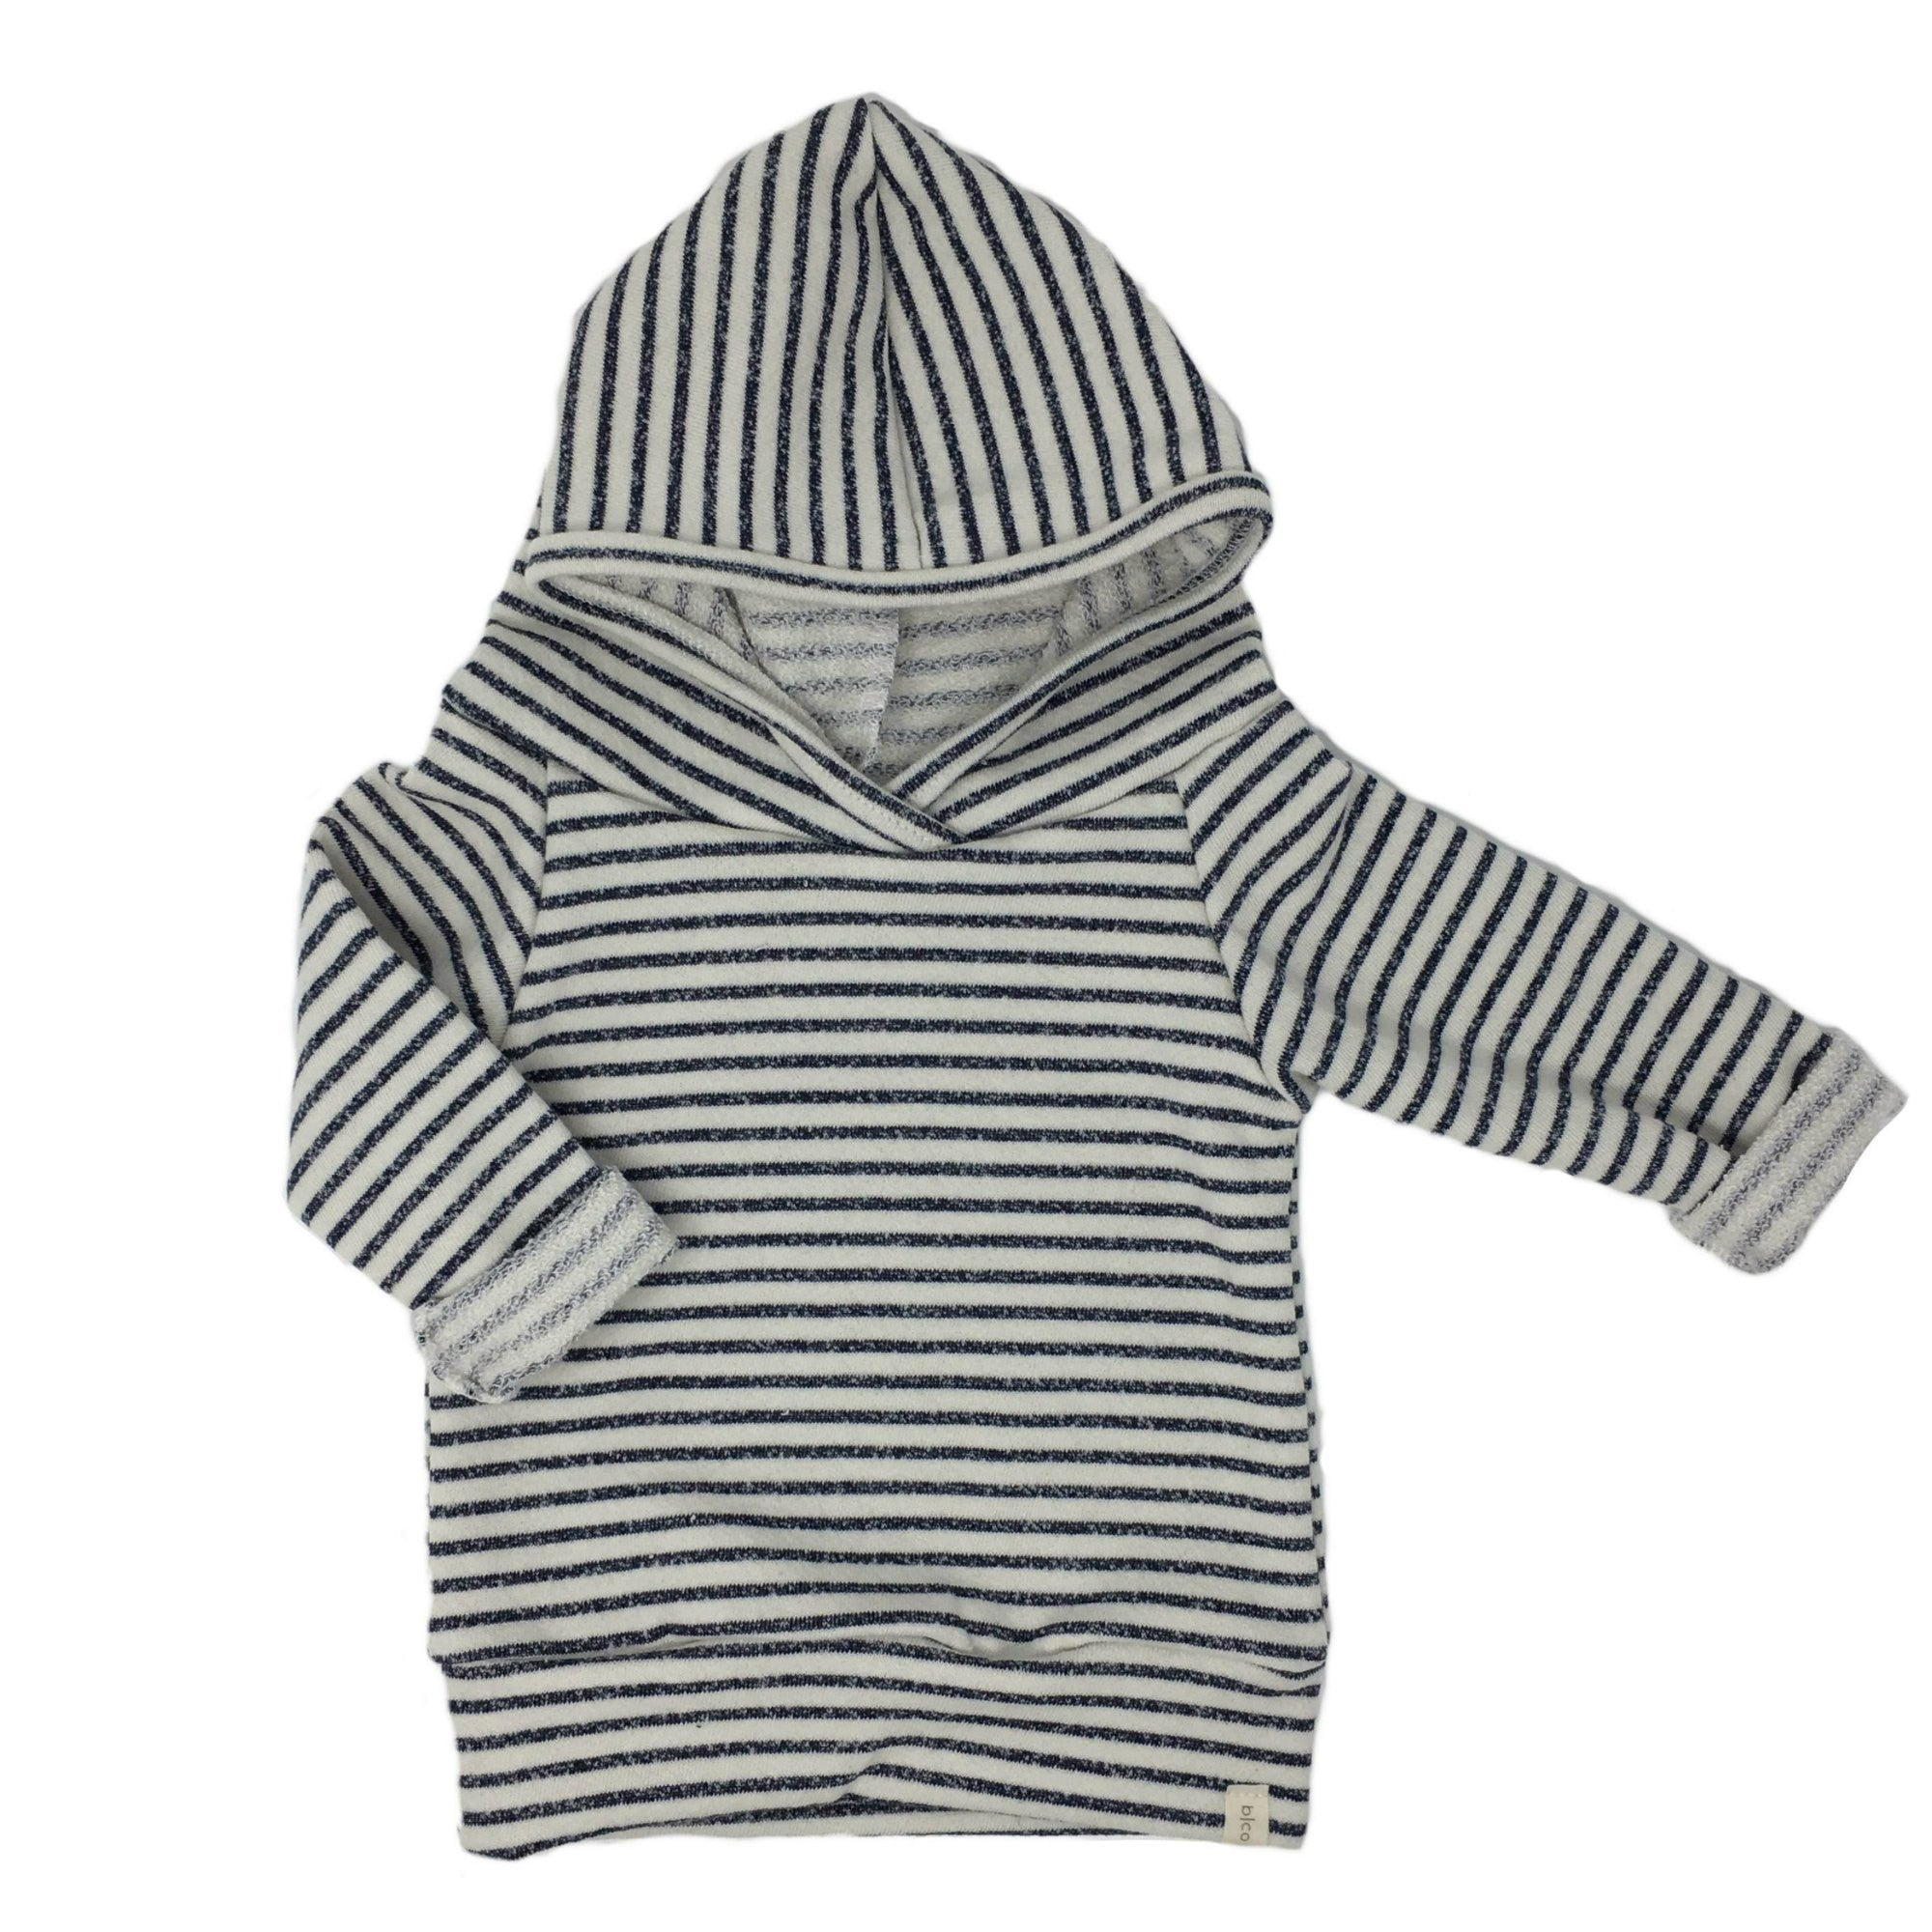 Baby Jogger Hoodie in Navy Stripes, Made in the USA